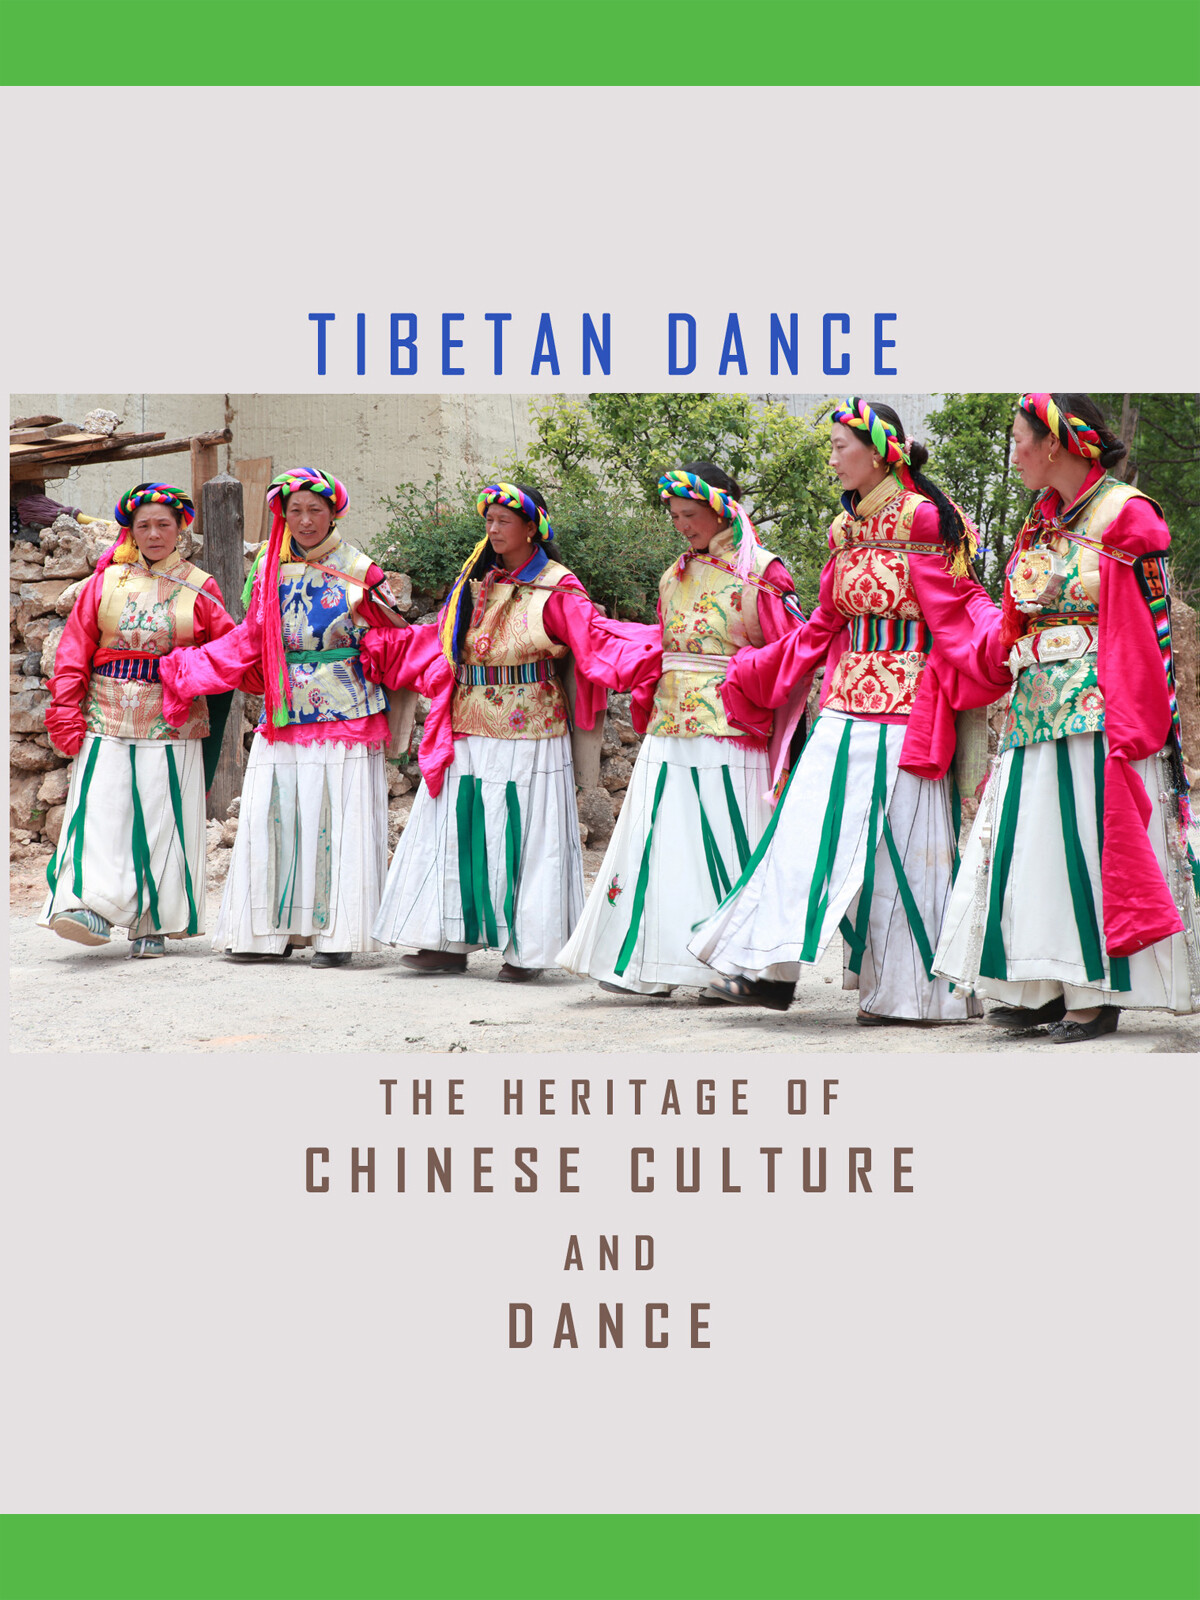 T8925 - The Heritage of Chinese Culture and Dance Ethnic Dance-Tibetan